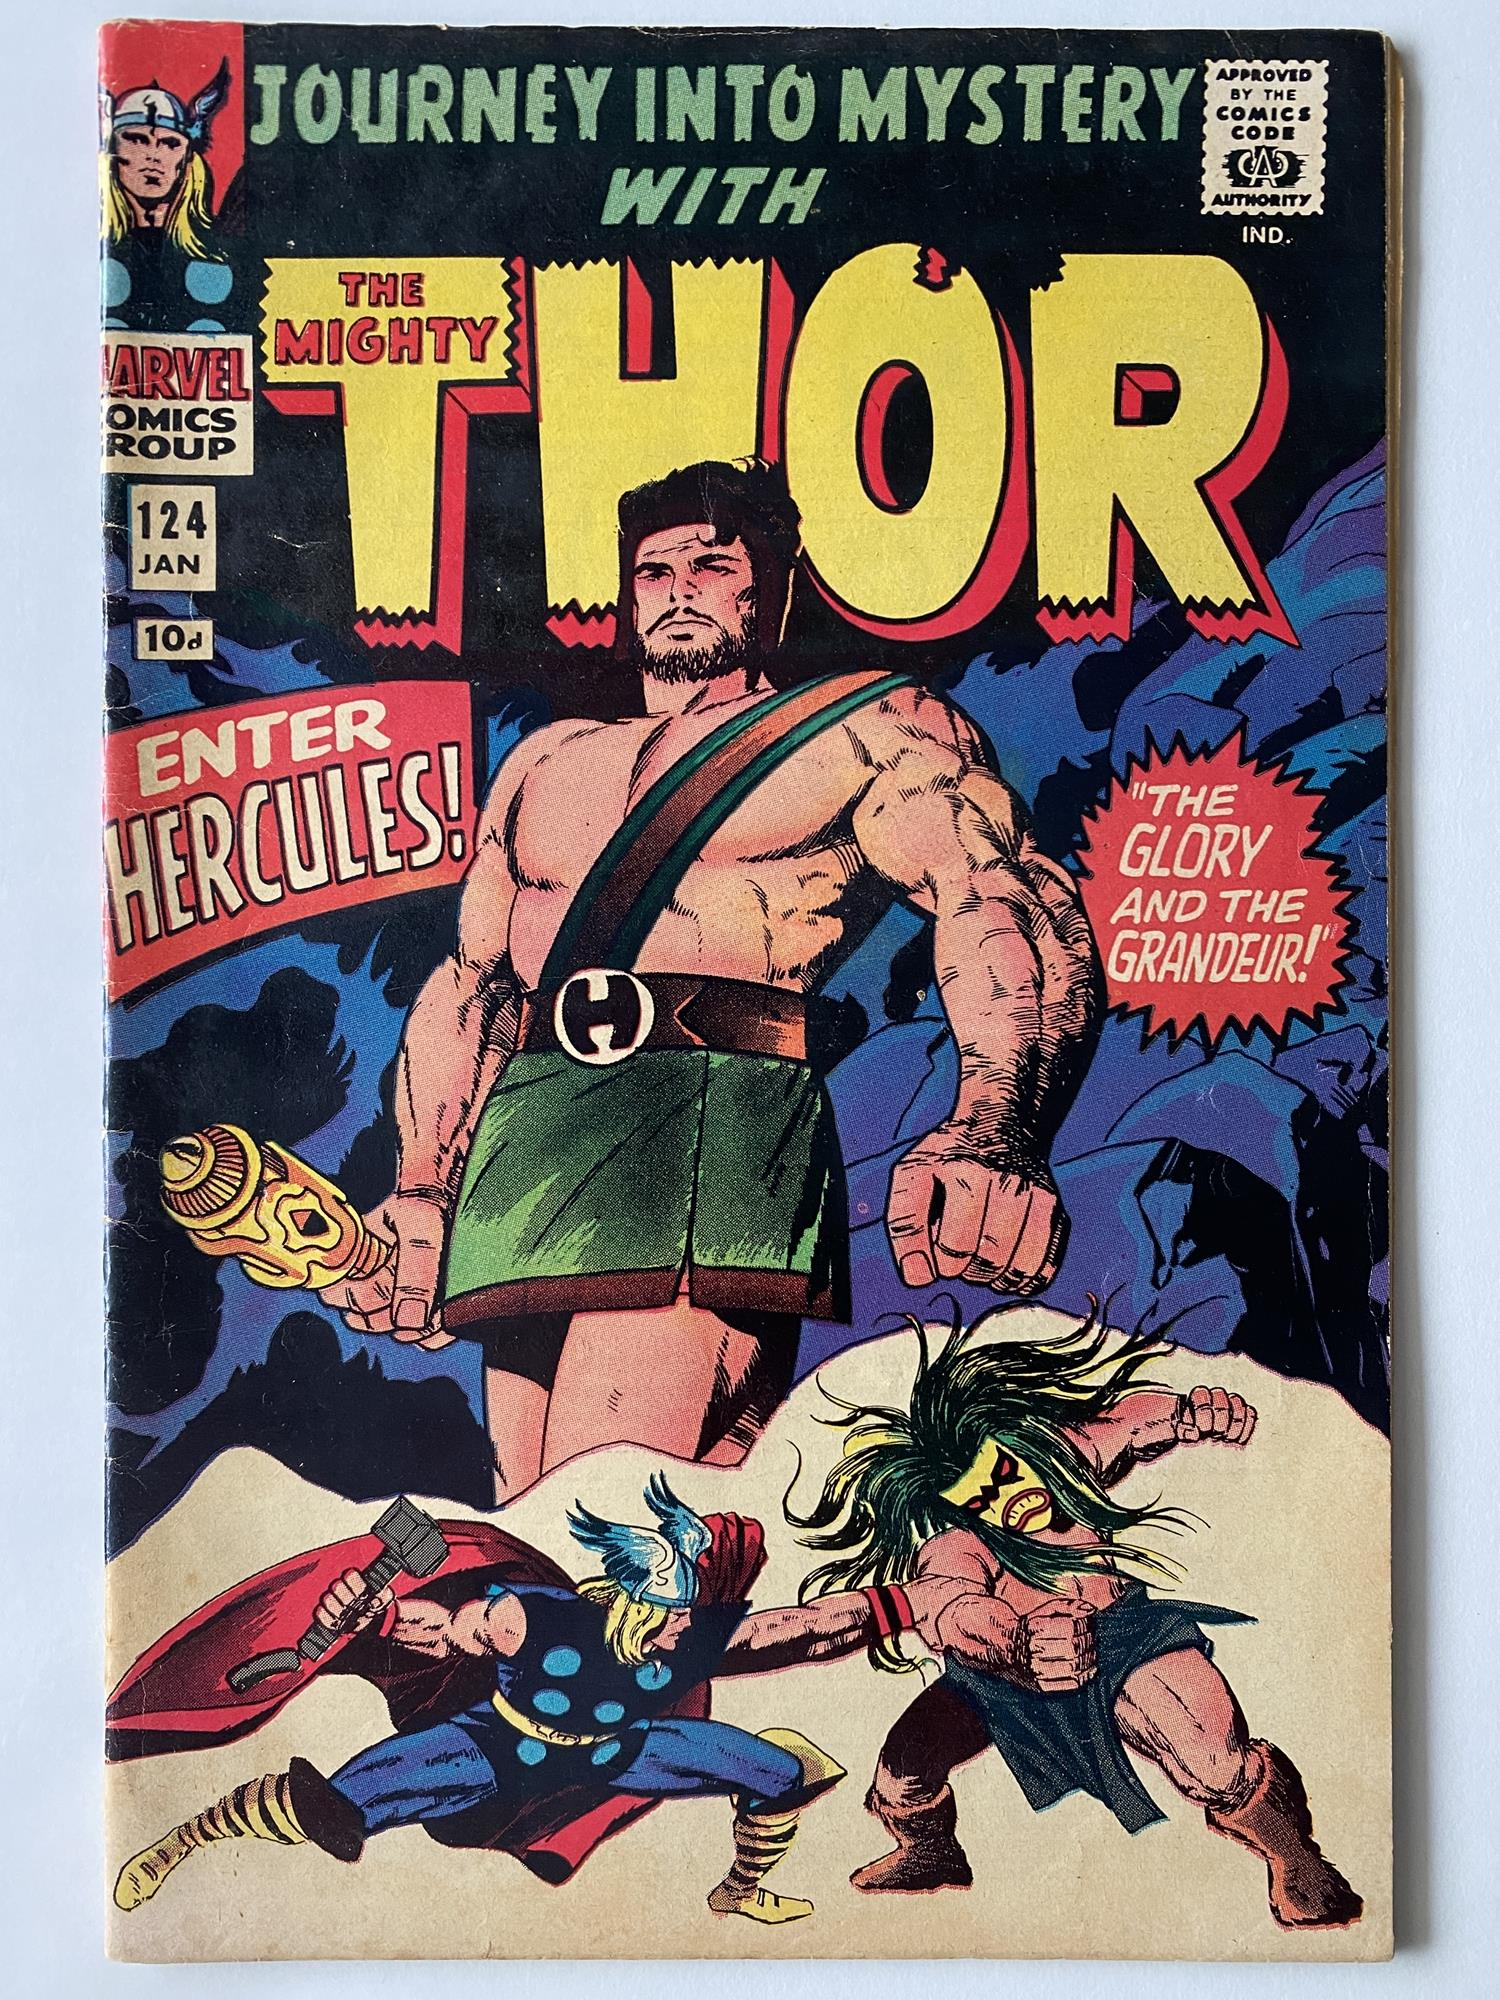 Lot 15 - THOR # 124 (1968 - MARVEL - Pence Copy) - Hercules cover + Thor reveals his secret identity to